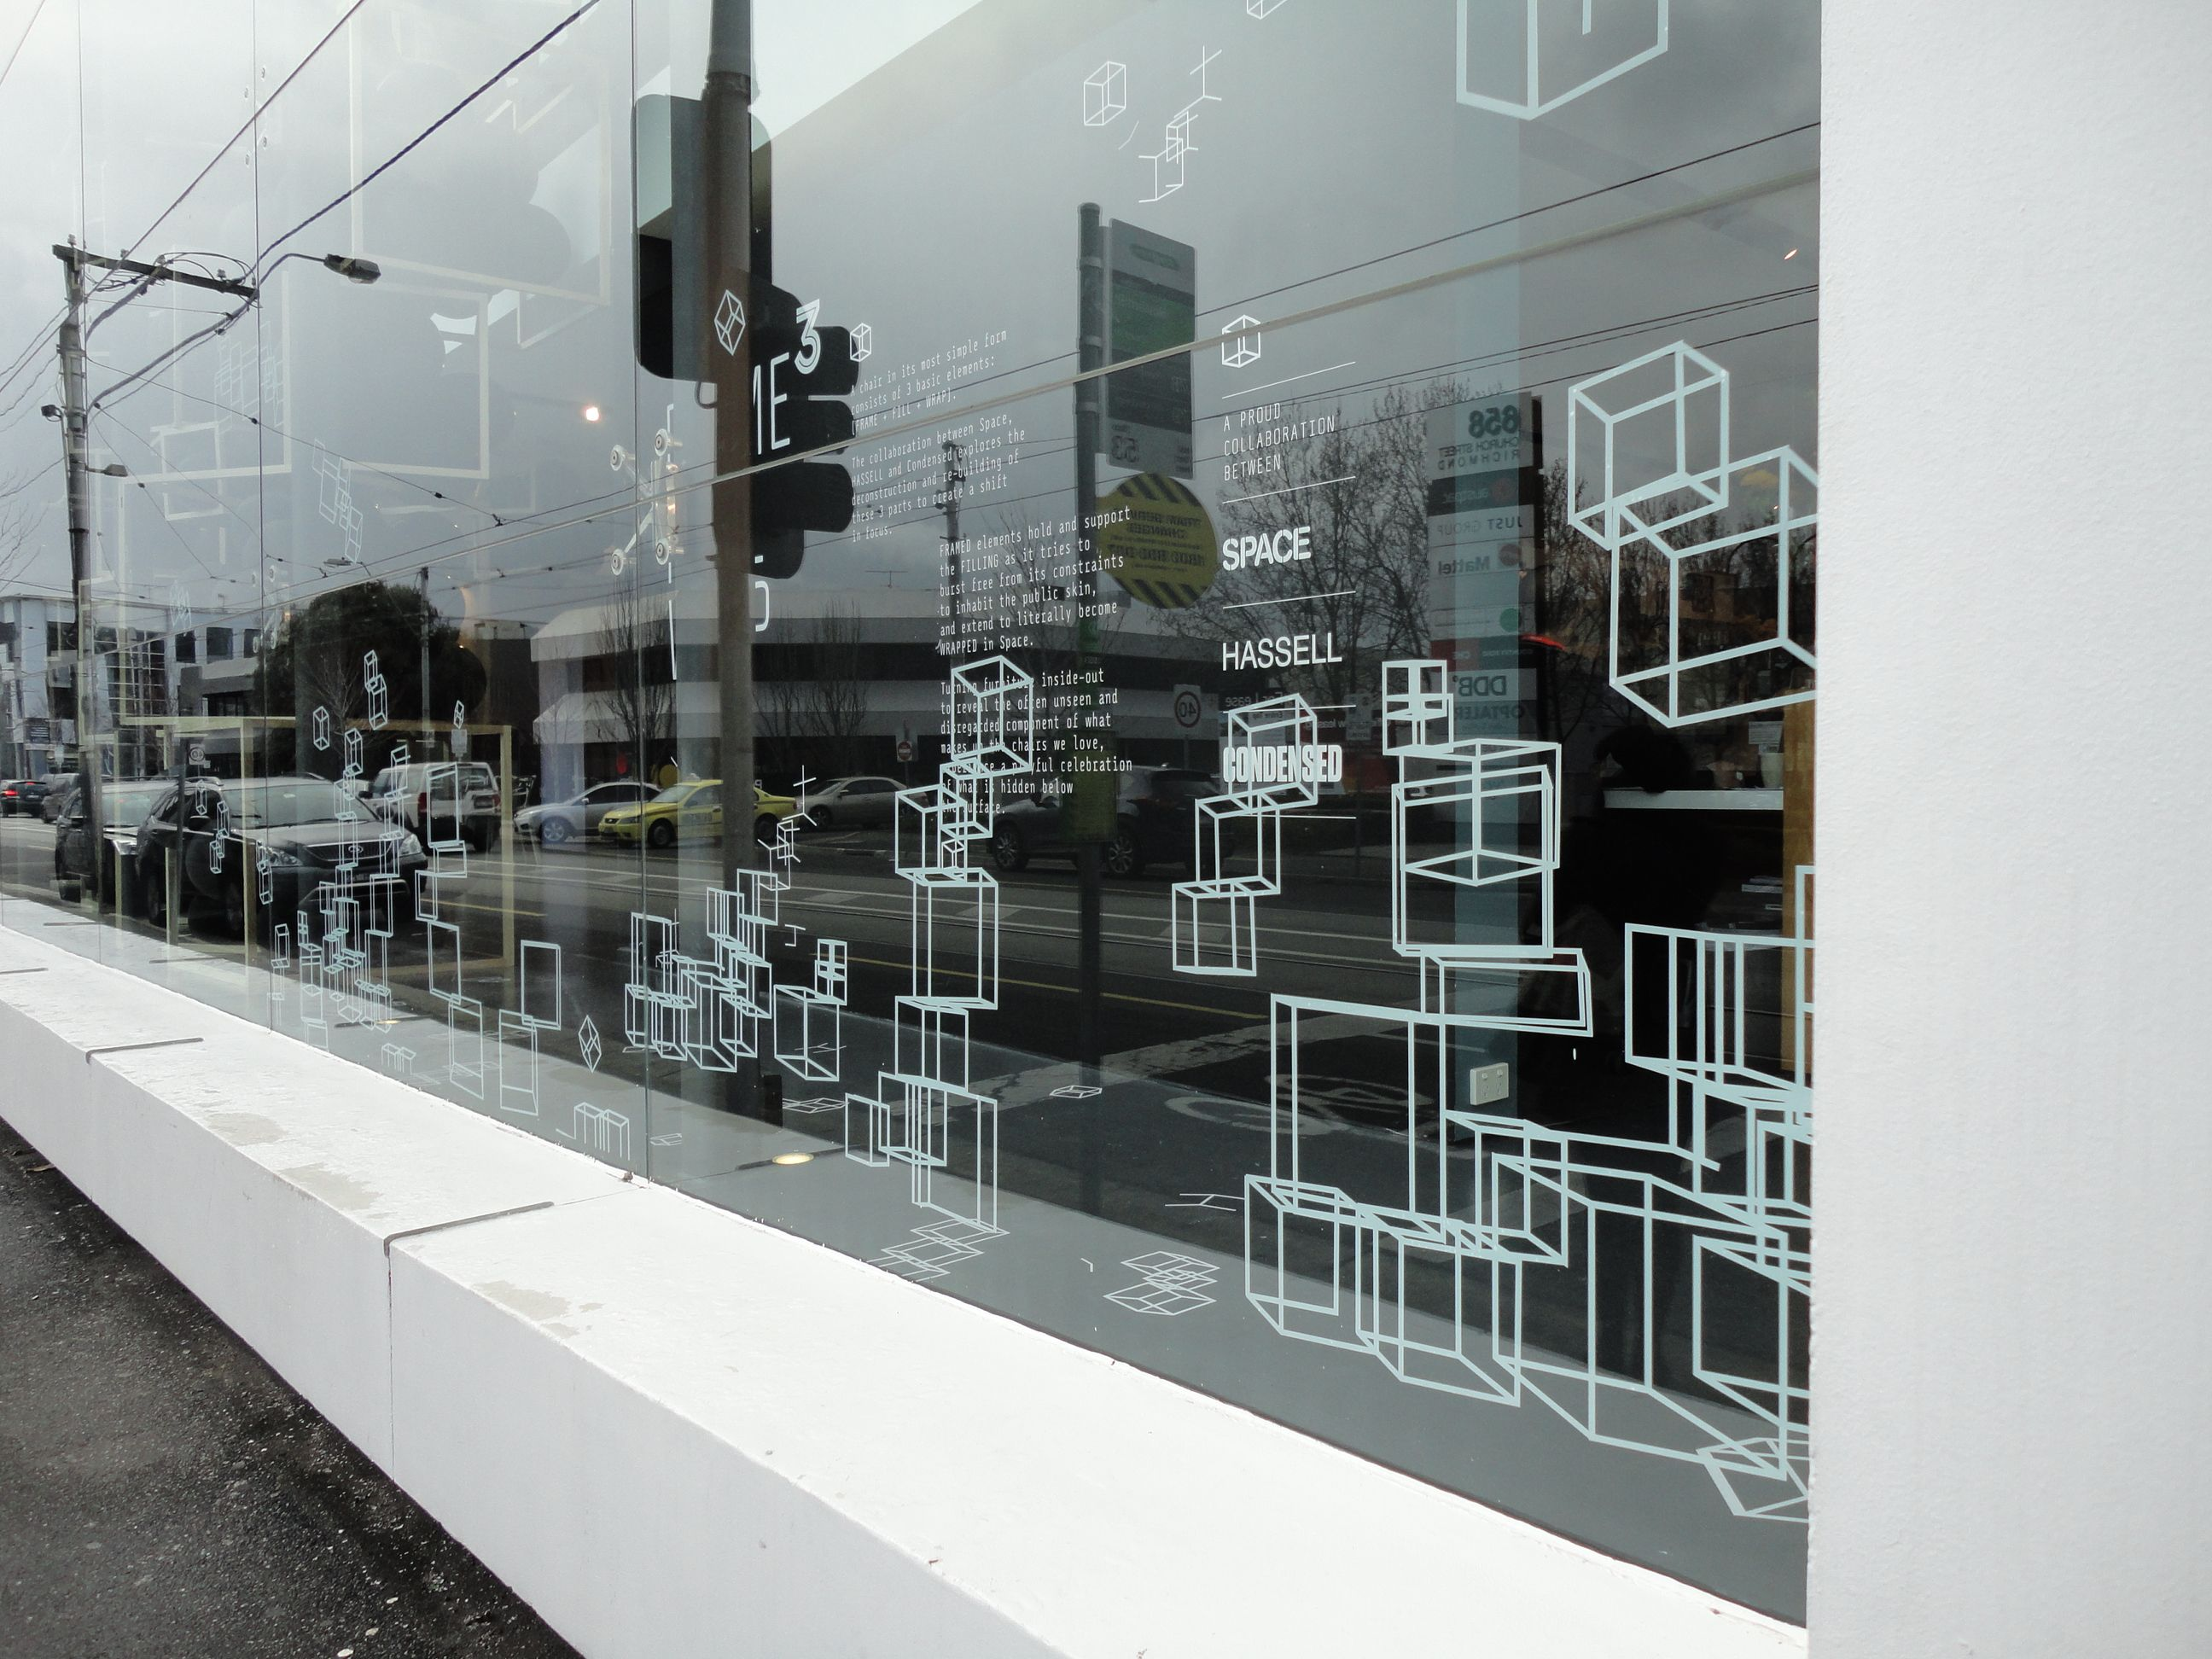 Window decals shop front frames space furniture design by condensed